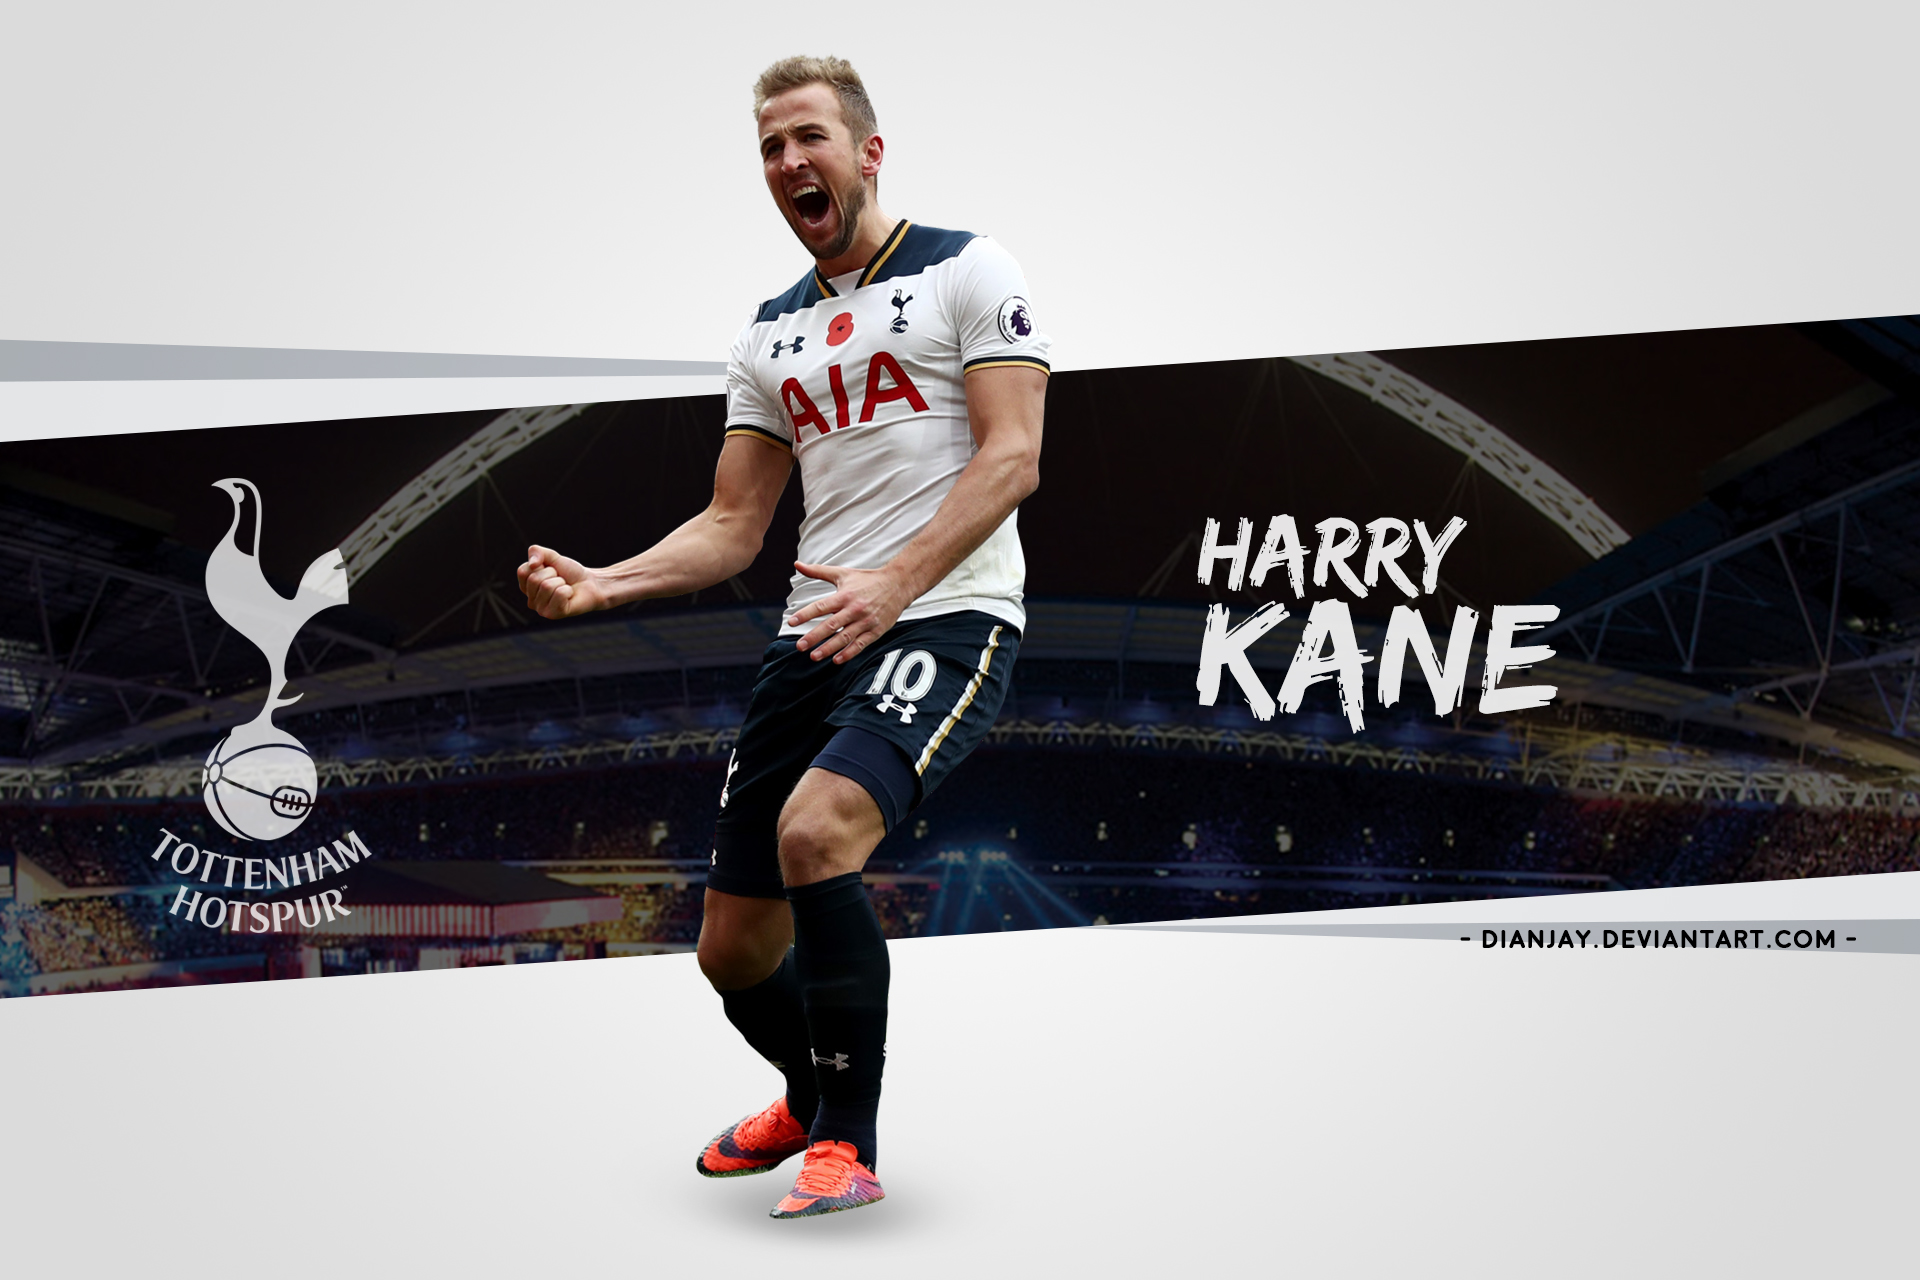 Harry Kane 2017/18 Wallpaper Desktop By Dianjay On DeviantArt